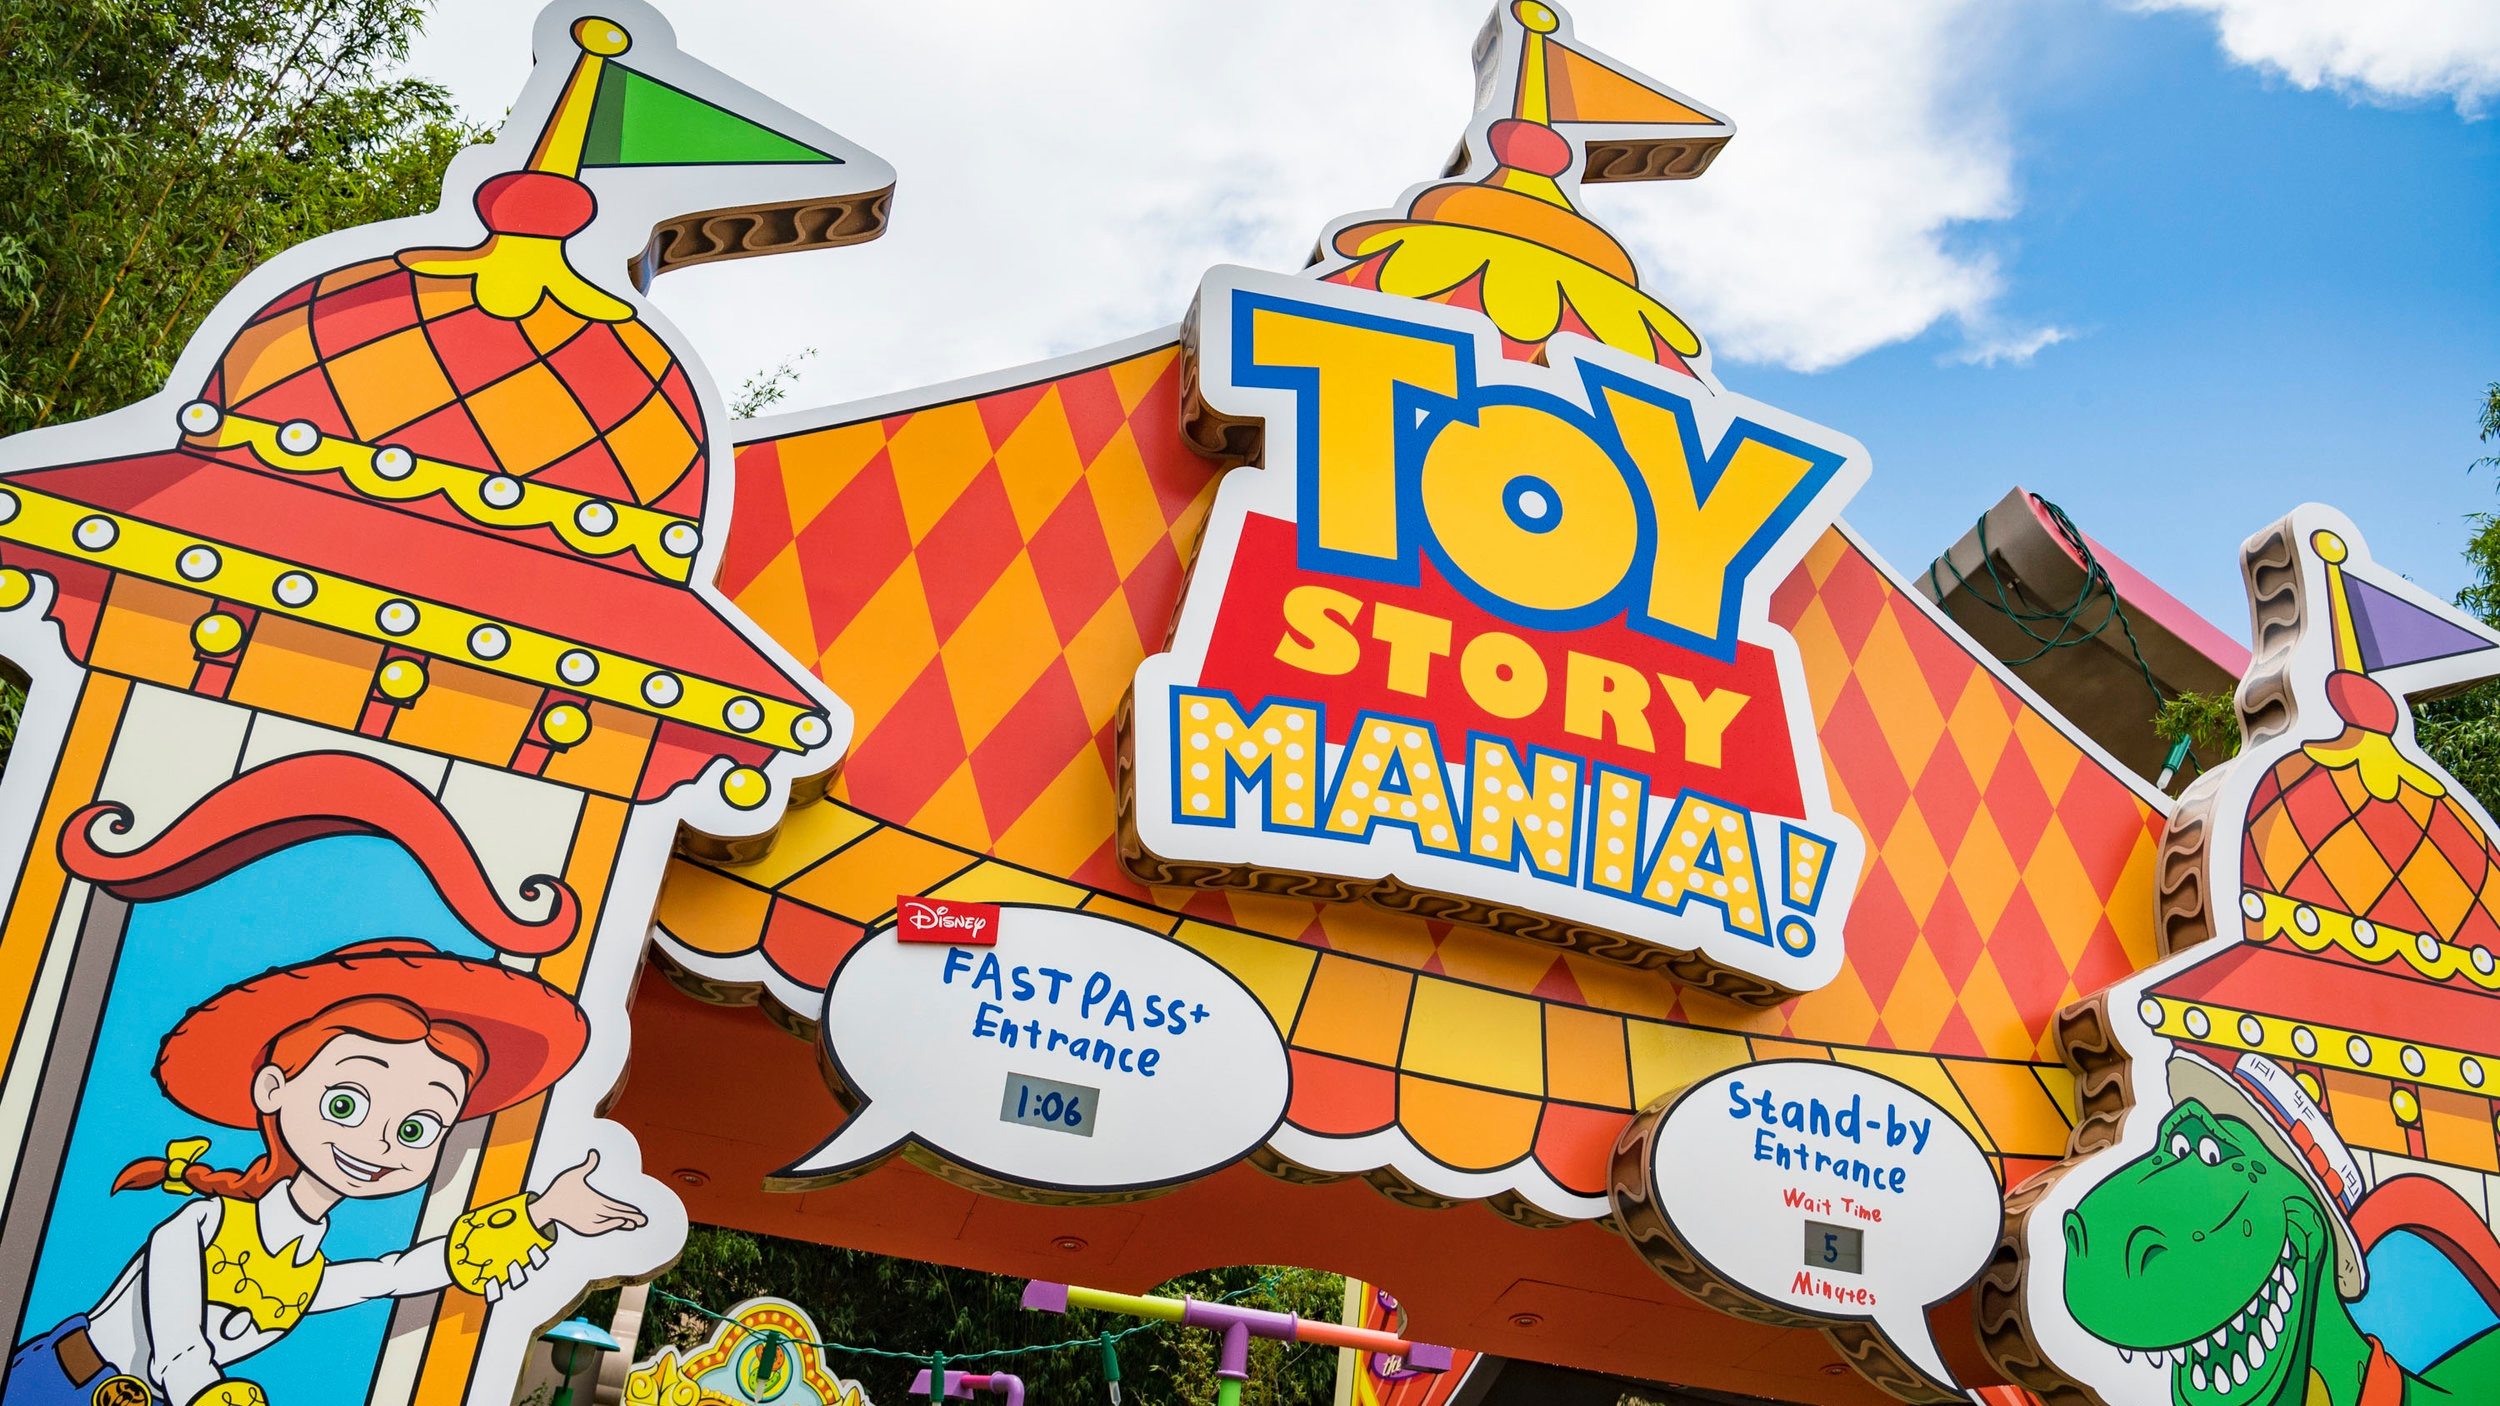 The new entrance to Toy Story Mania! (Photo: Disney)